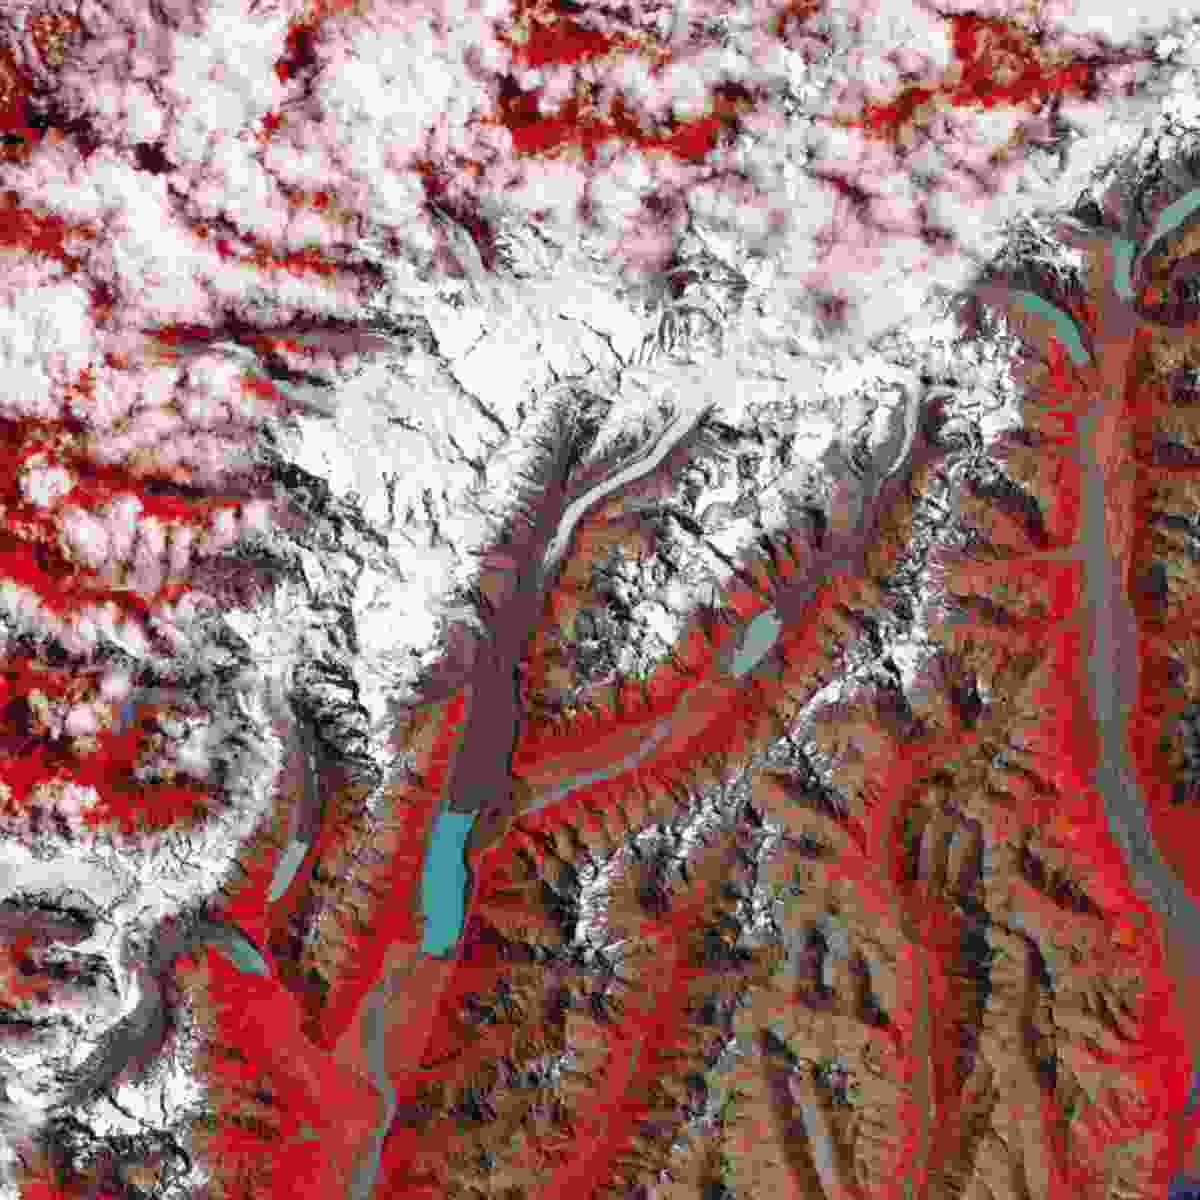 Tasman Lake, New Zealand (NASA Goddard Space Flight Centre and U.S. Geological Survey)